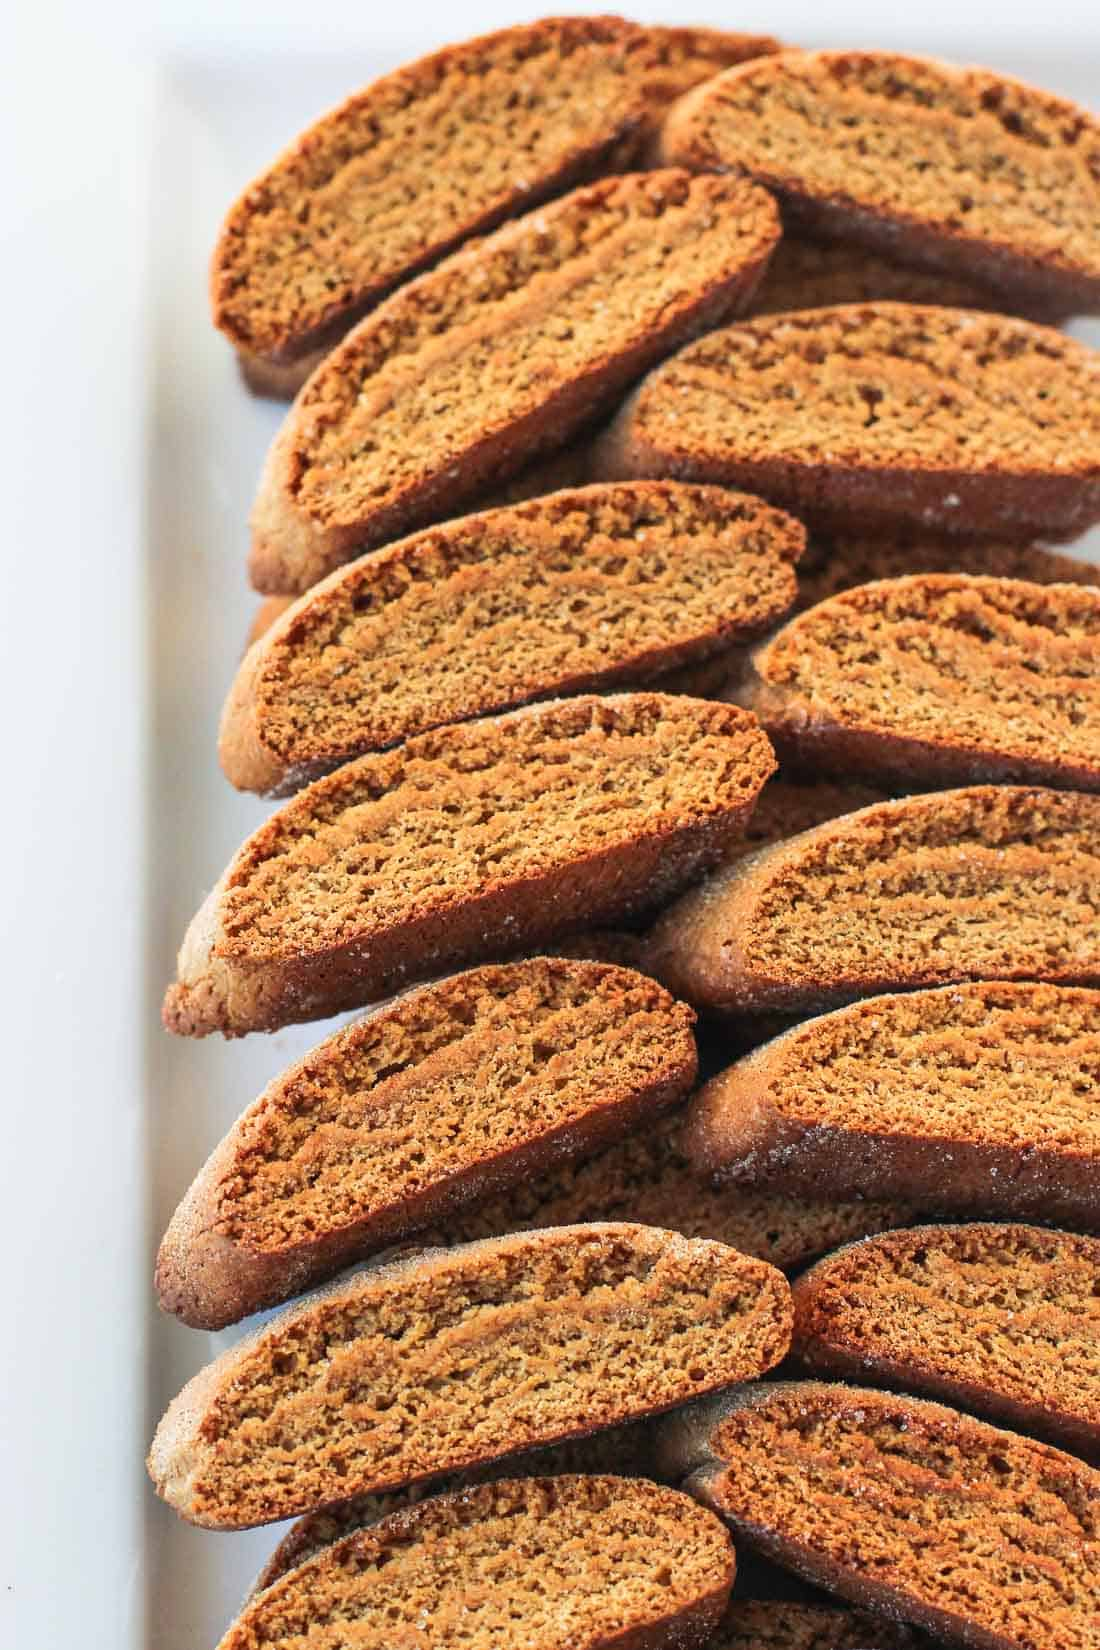 A tray of stacked gingerbread biscotti.